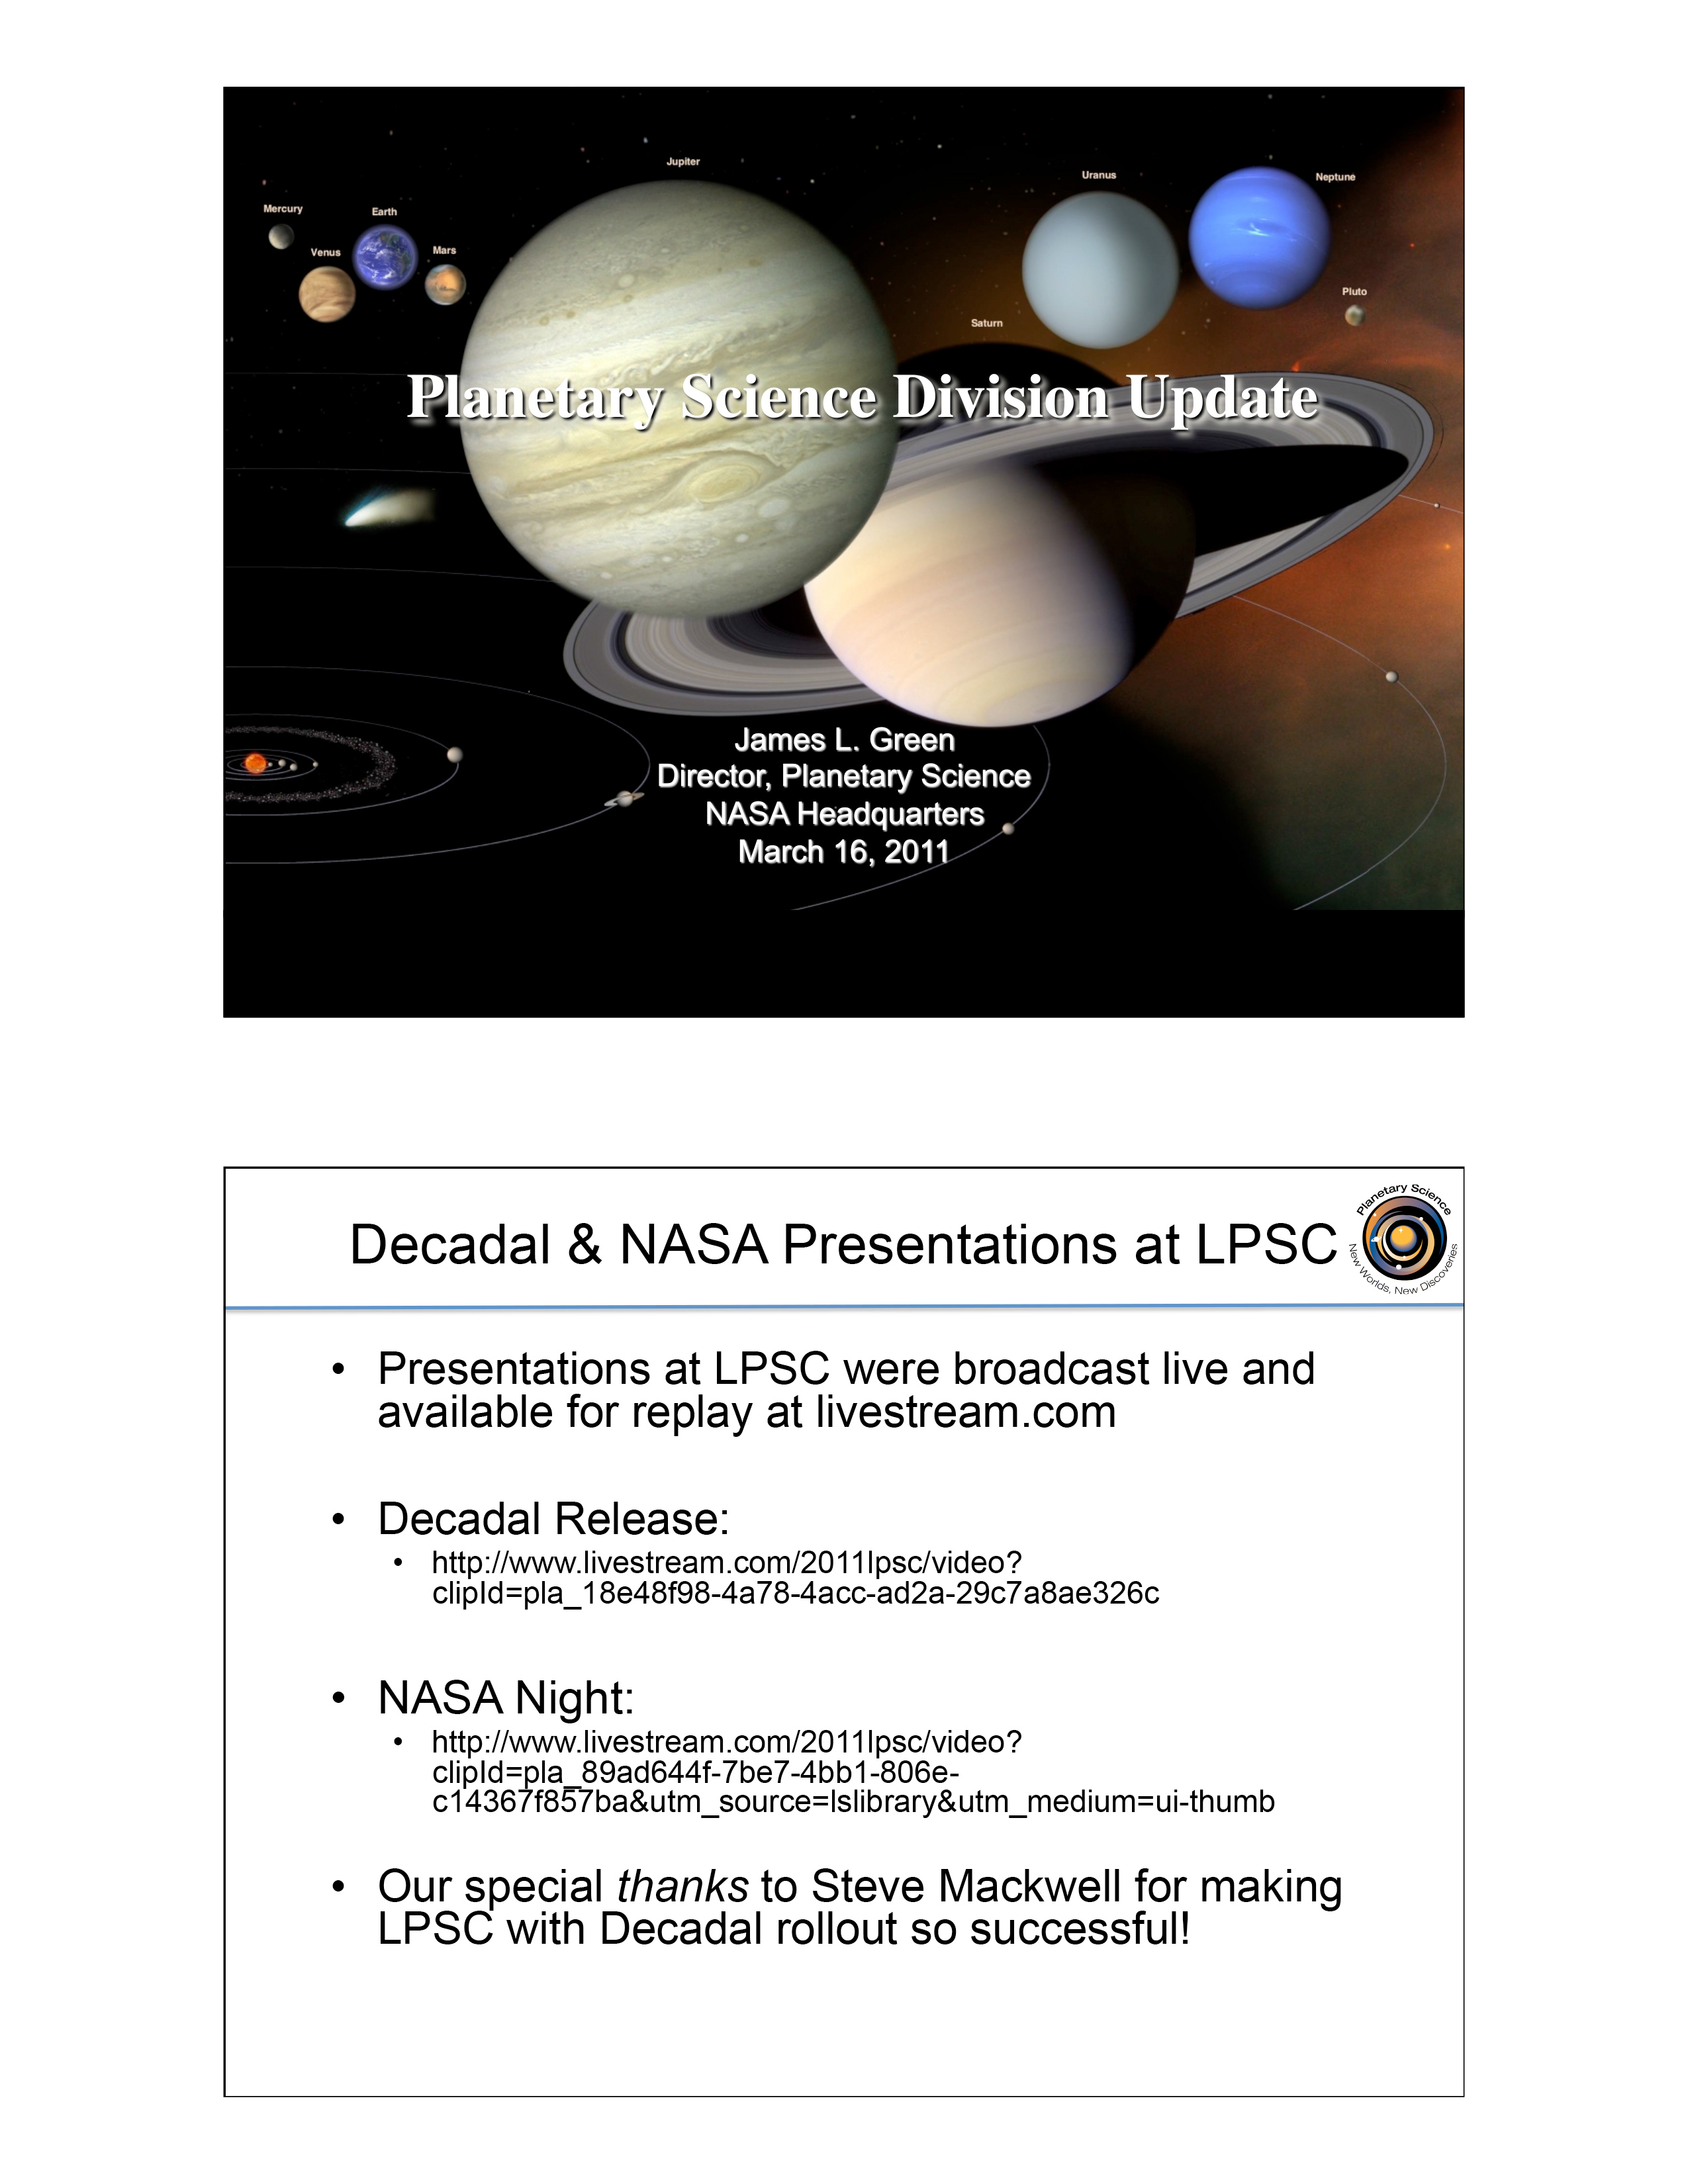 Planetary Science Division Update by Planetary Science Division Director Dr. James Green